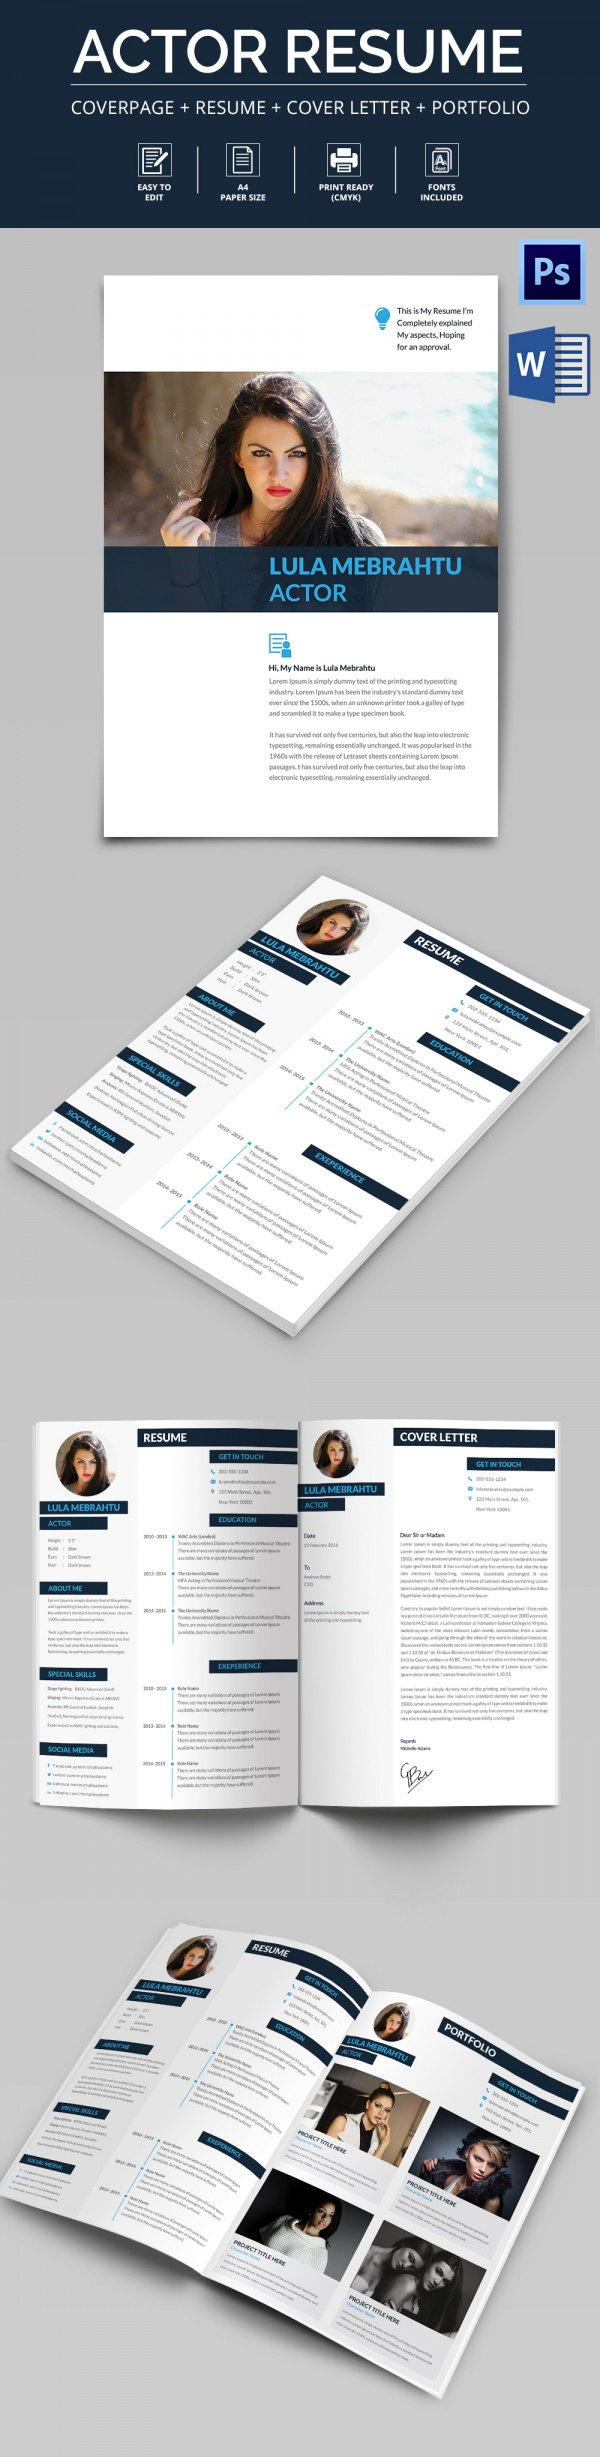 free sample acting cv templates in pdf resume format excel editable actor template should Resume Resume Format Excel Download